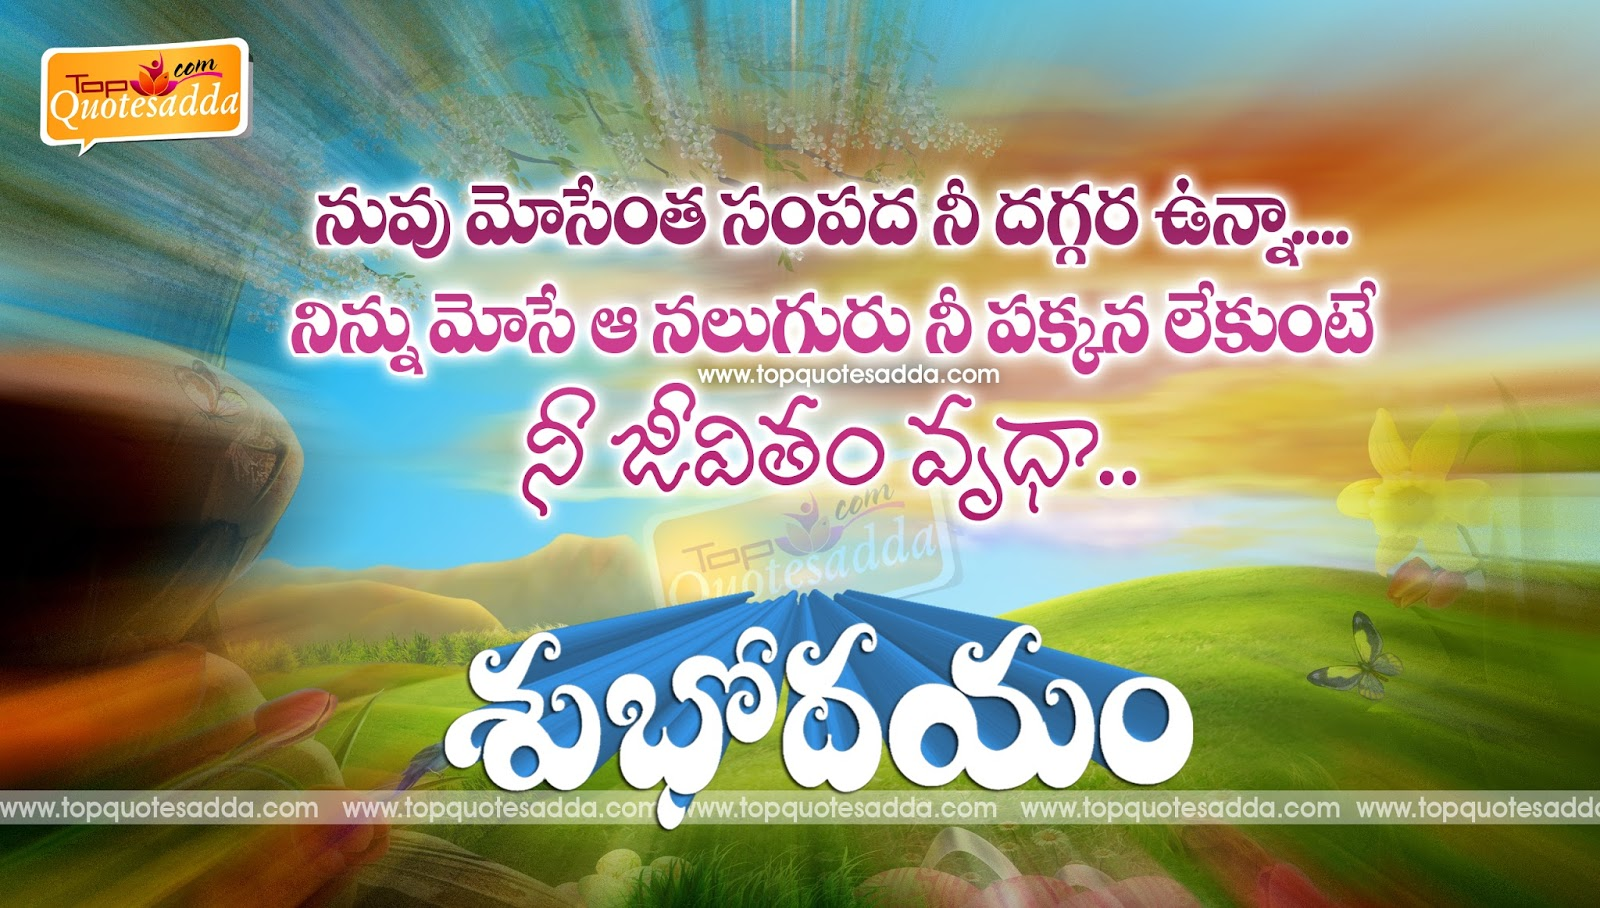 Best Telugu Good Morning Saying Quotes About Human Values